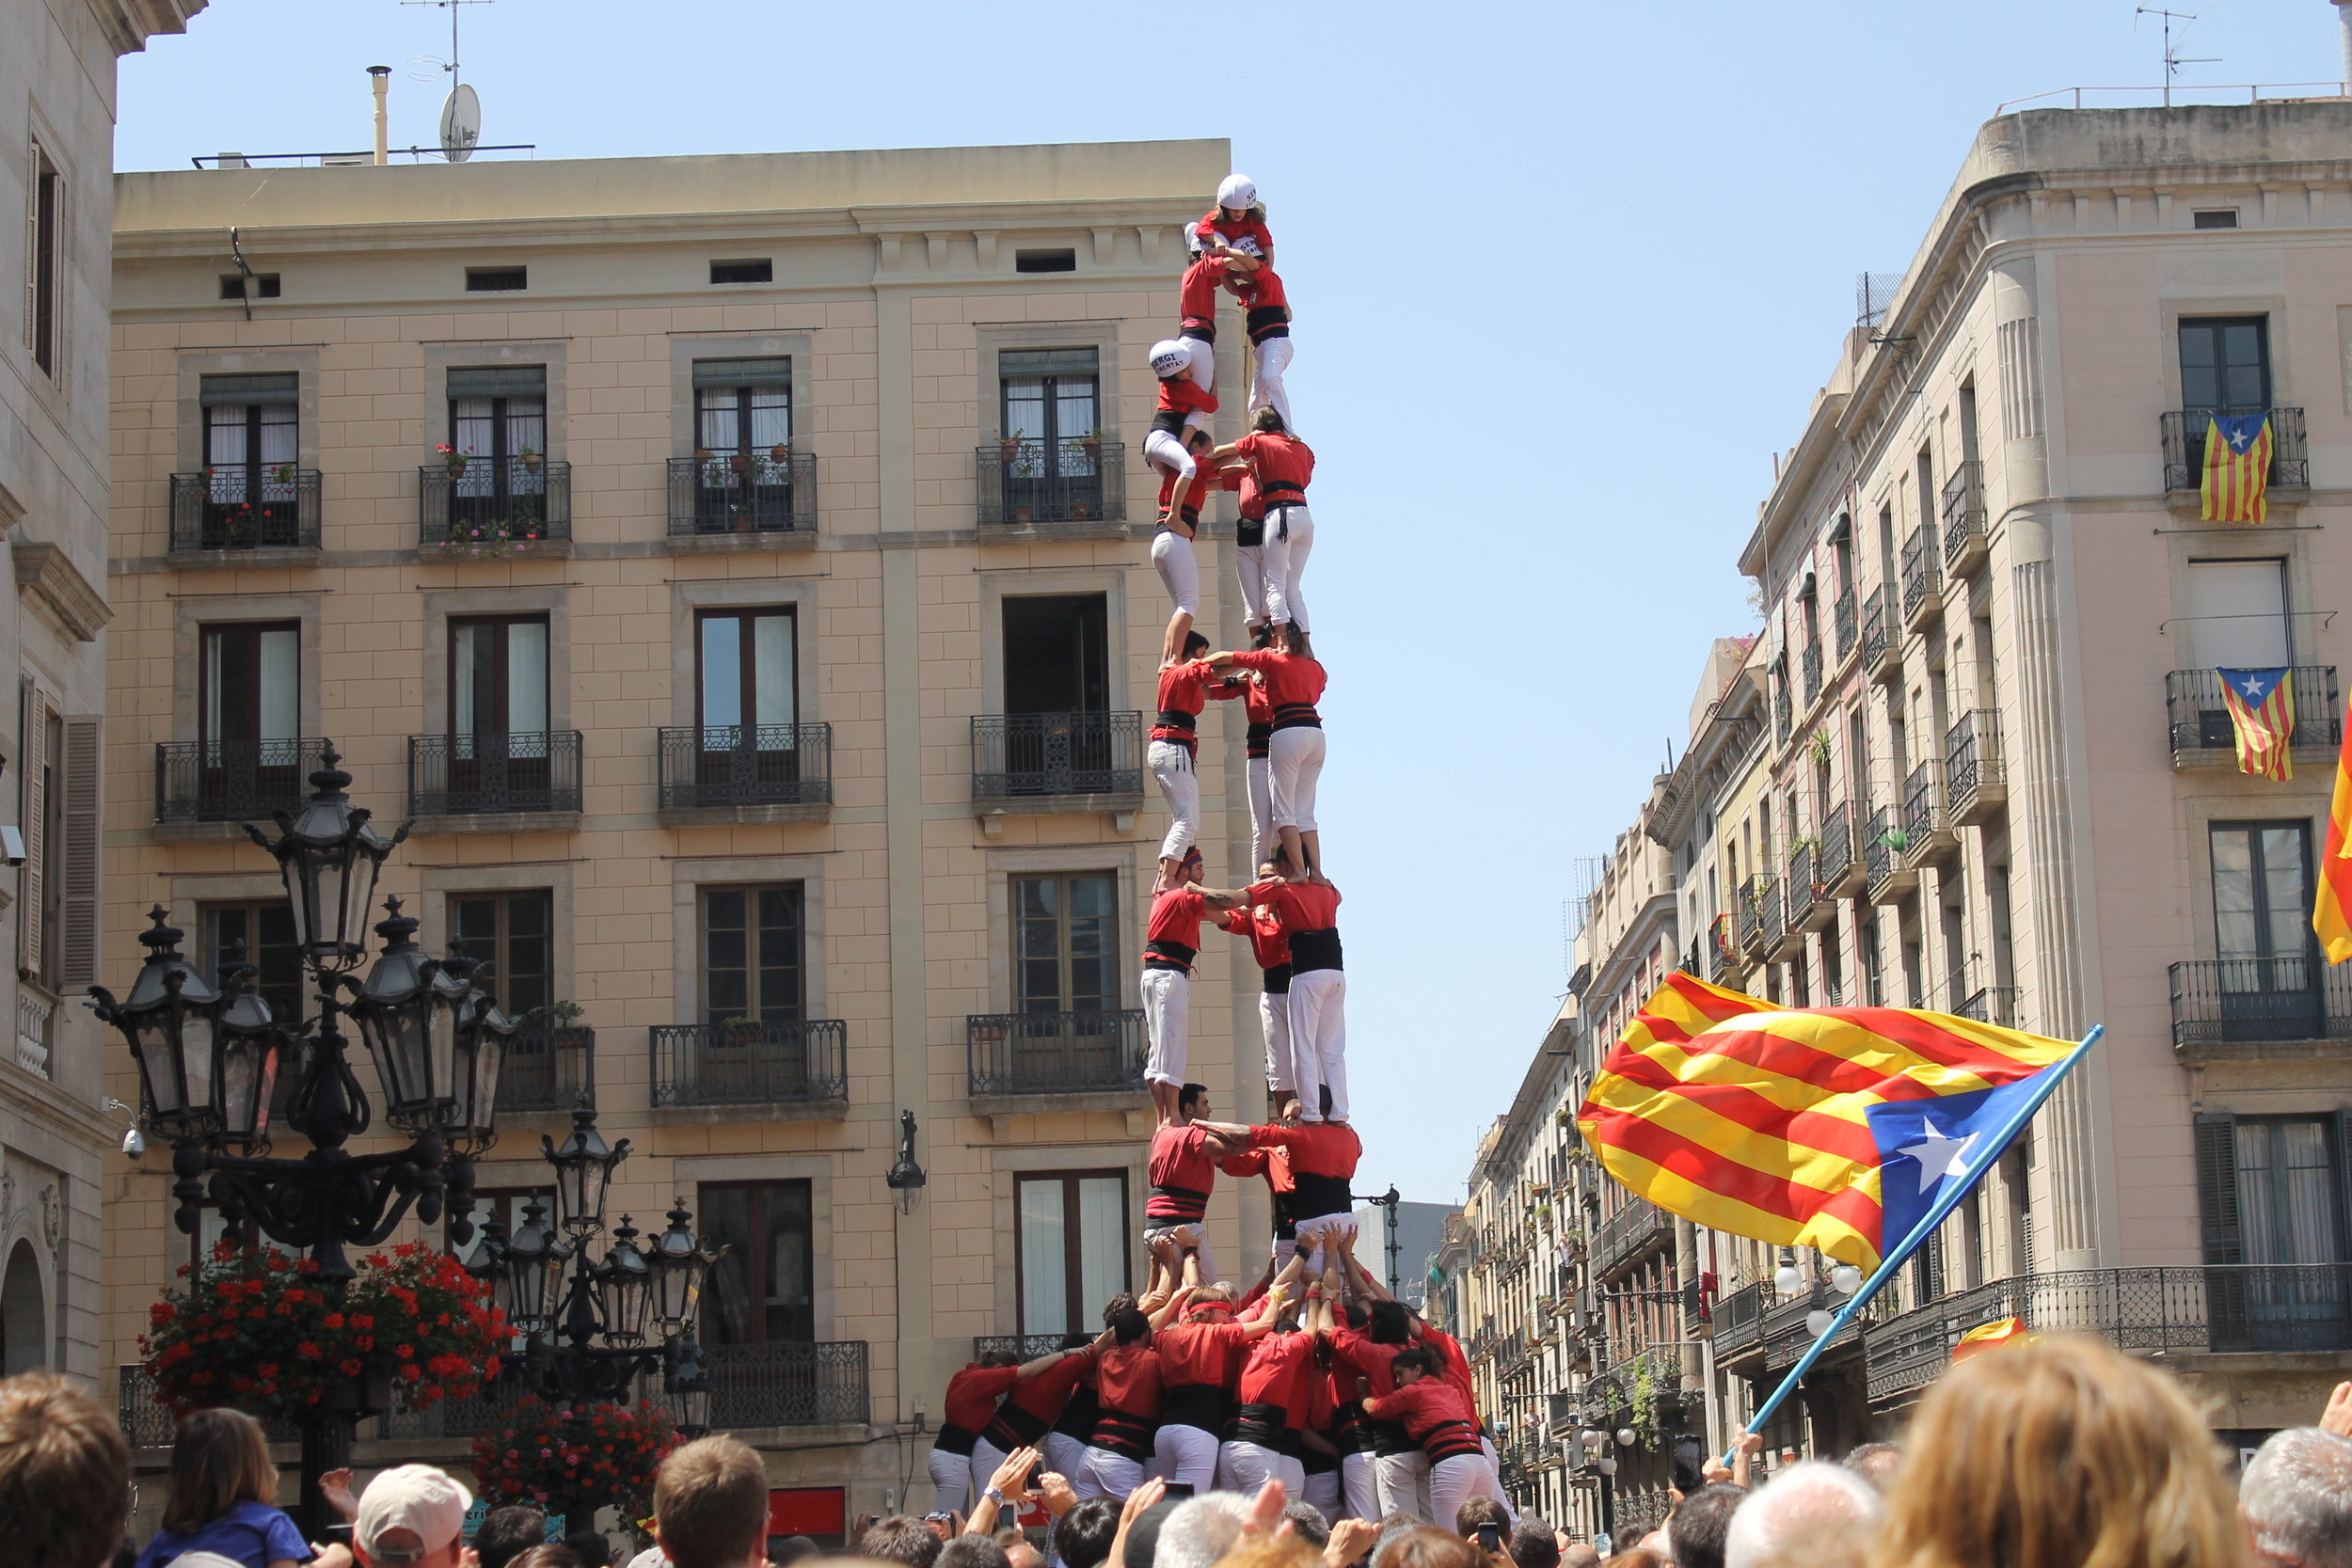 Castellers, or human towers